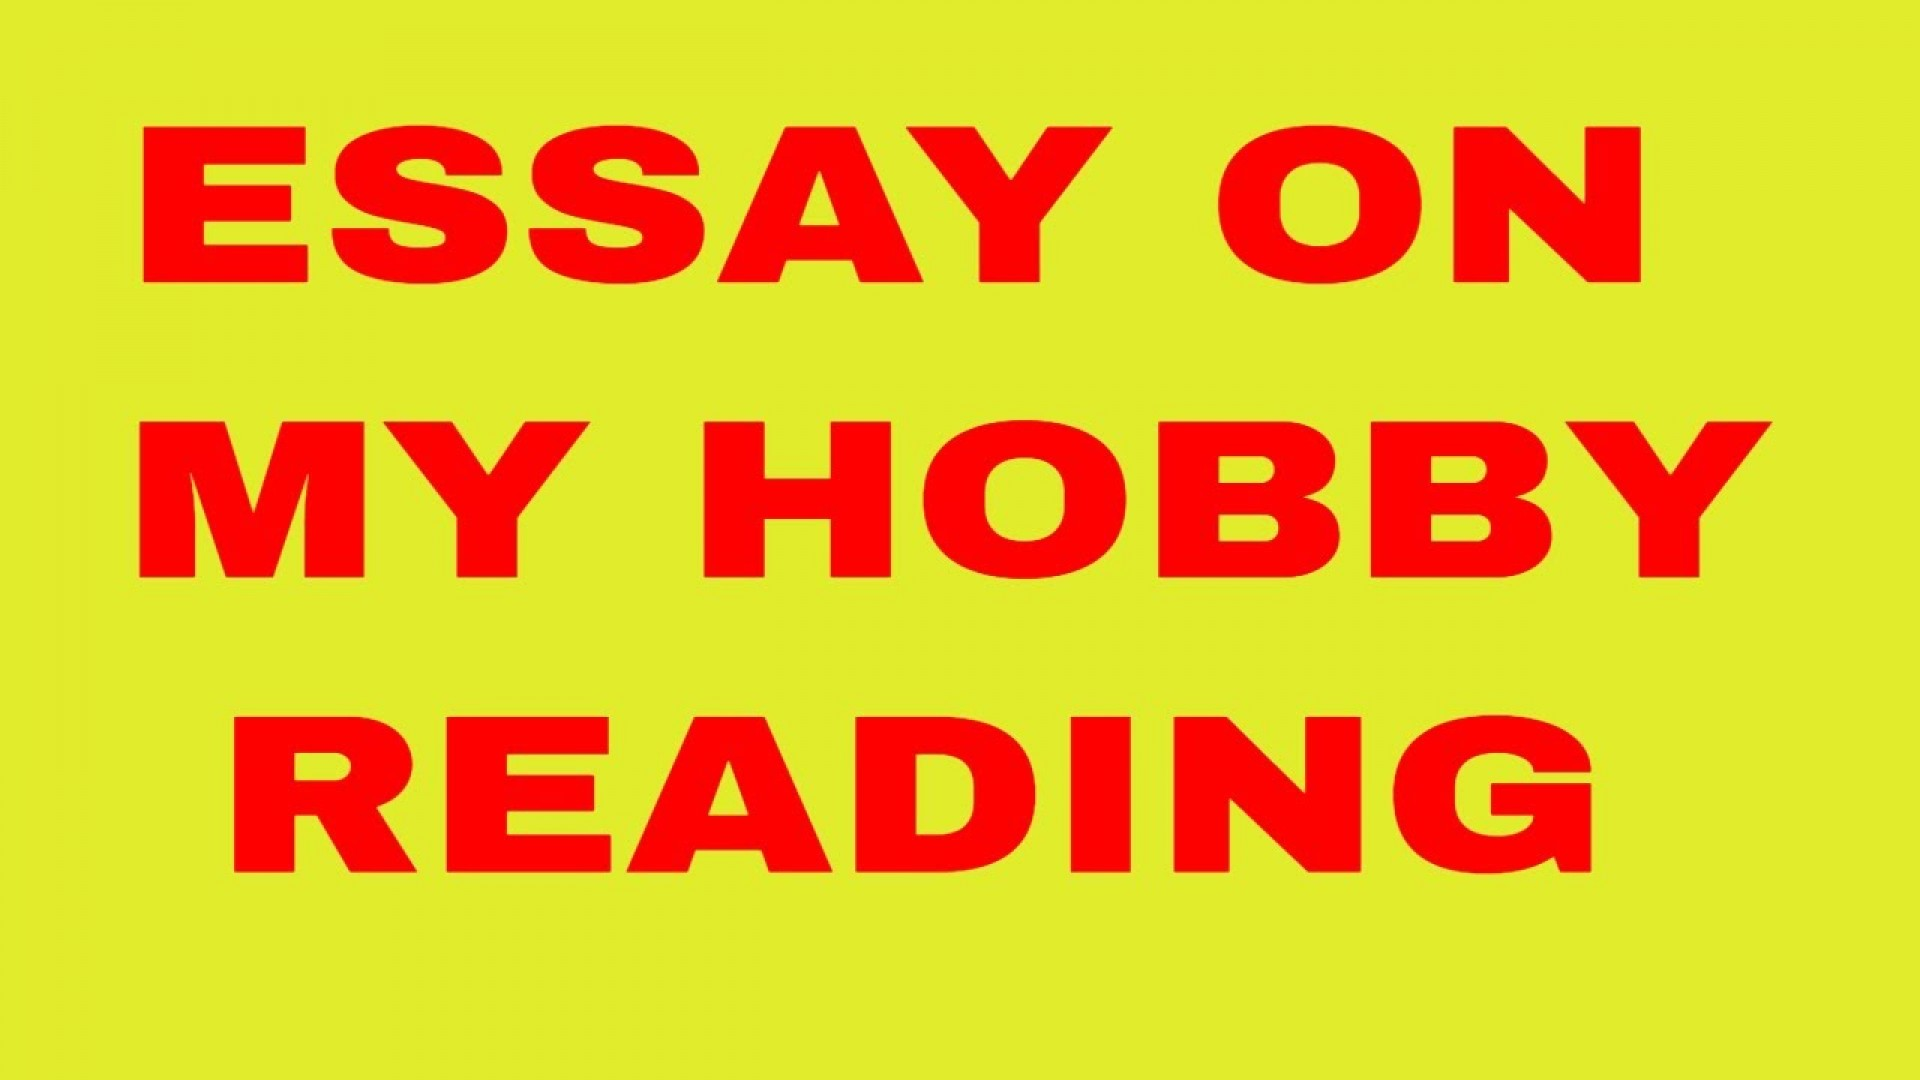 008 Essay Example Hobby Incredible Pt3 My For Class 2 In Urdu Favourite Gardening 1920